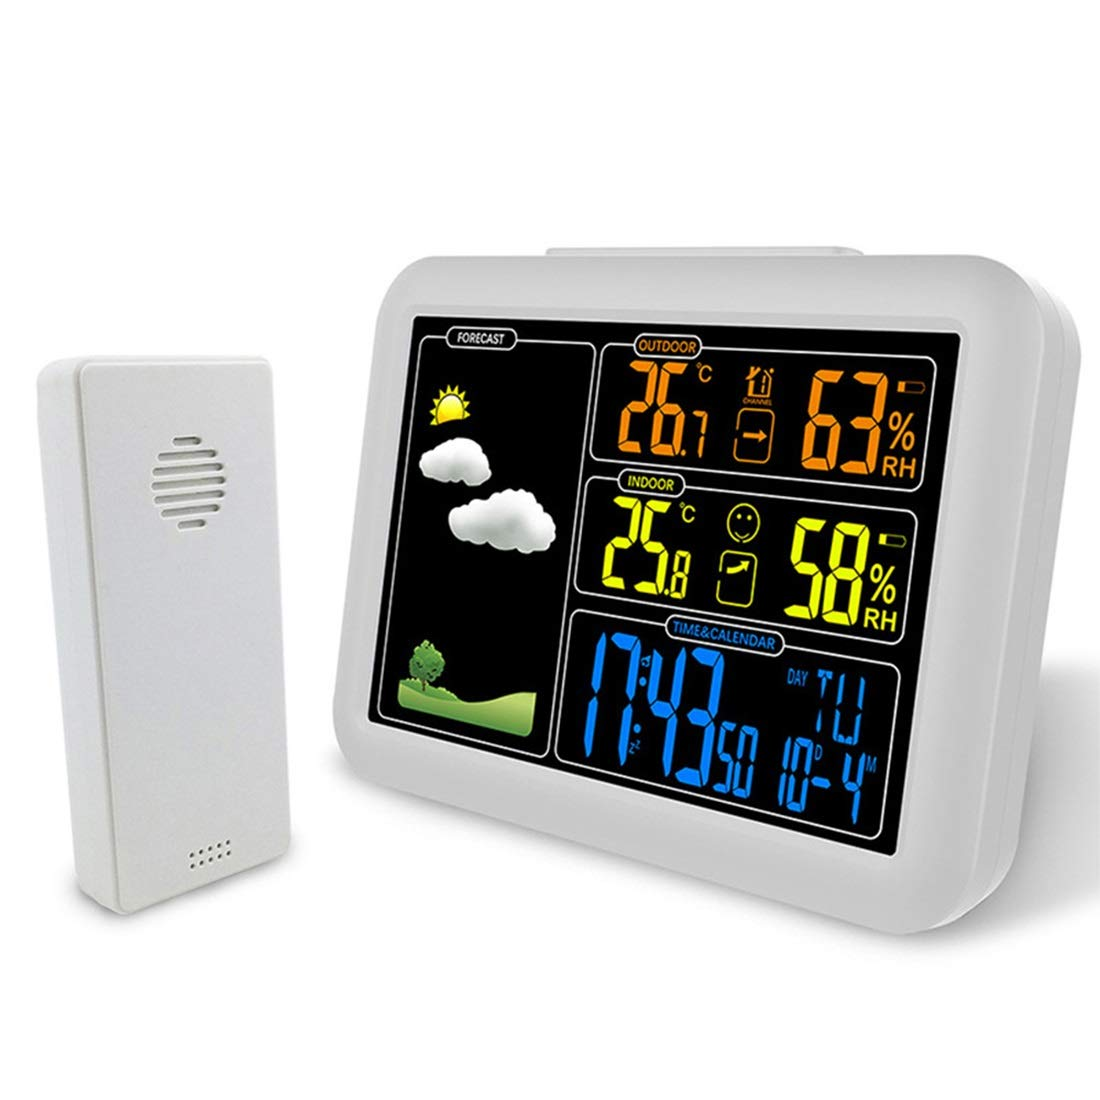 HXD Multi-Function Radio Wave Alarm Clock, LED Large Screen Electronic Weather Forecast Clock Temperature Humidity Snooze Clock by HXD